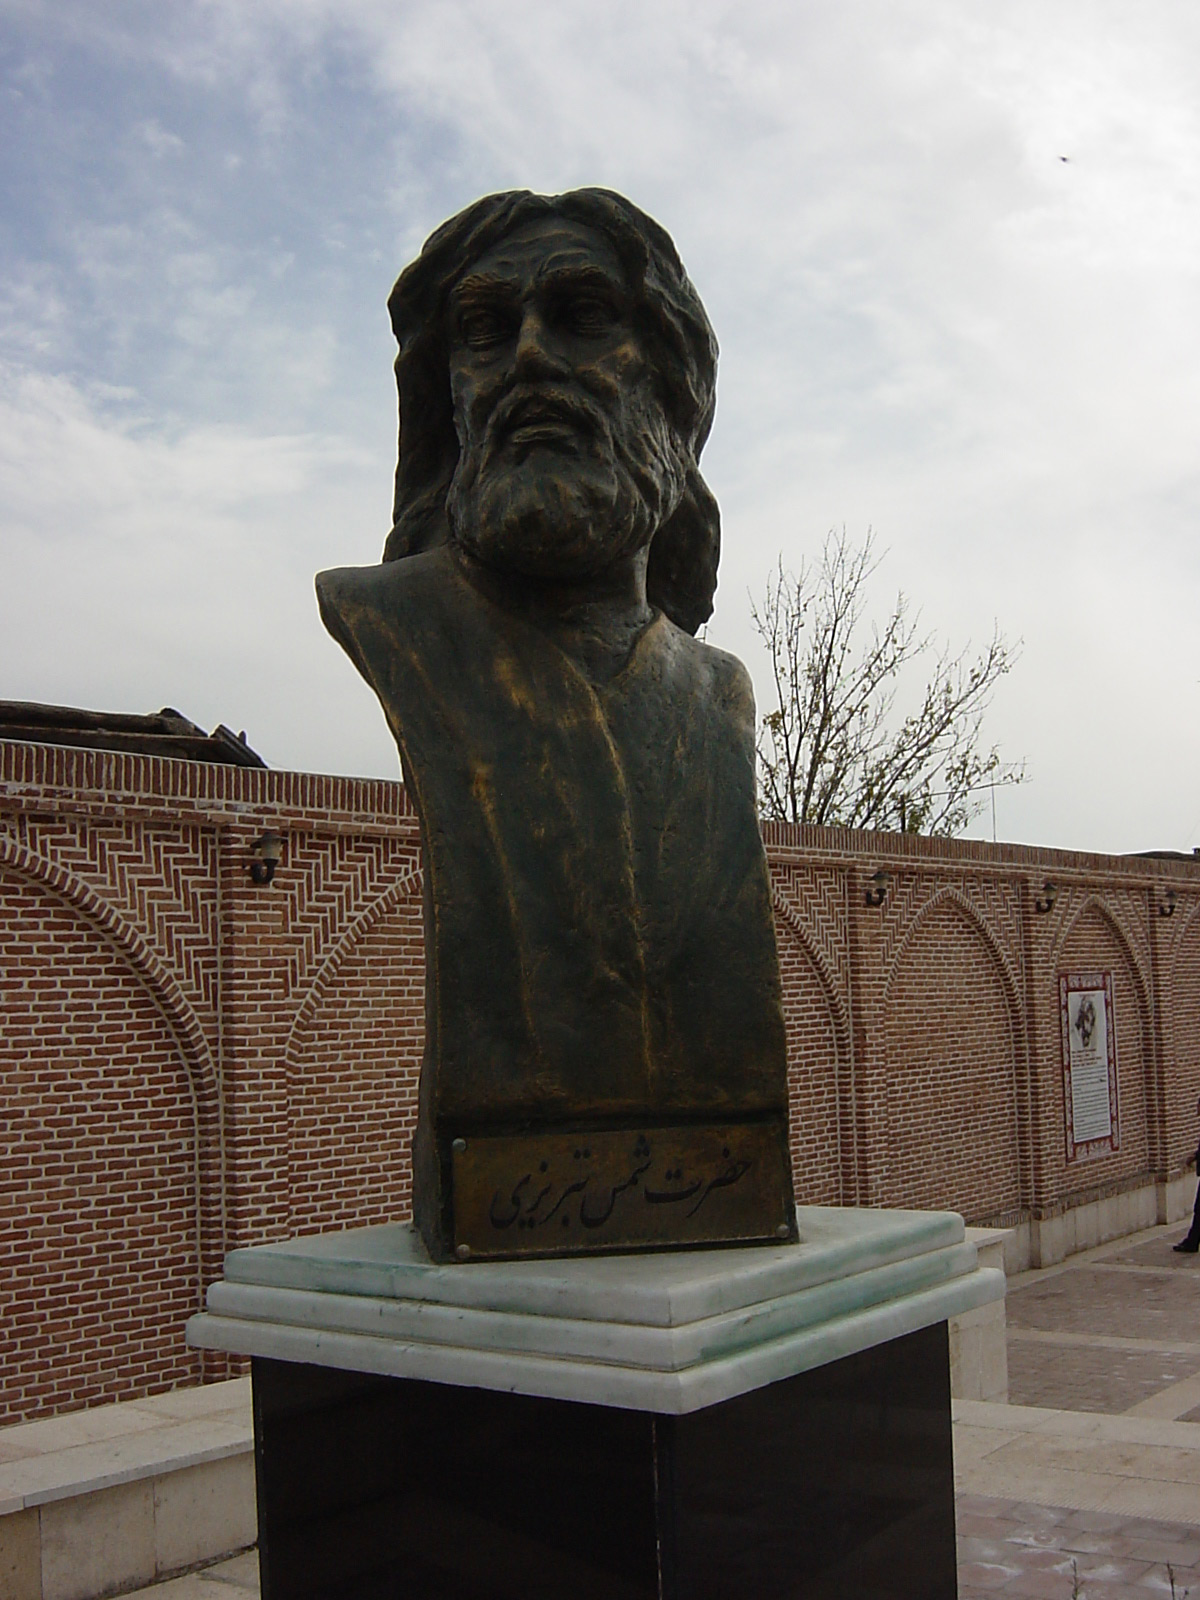 Shams Tabrizi Wikipedia